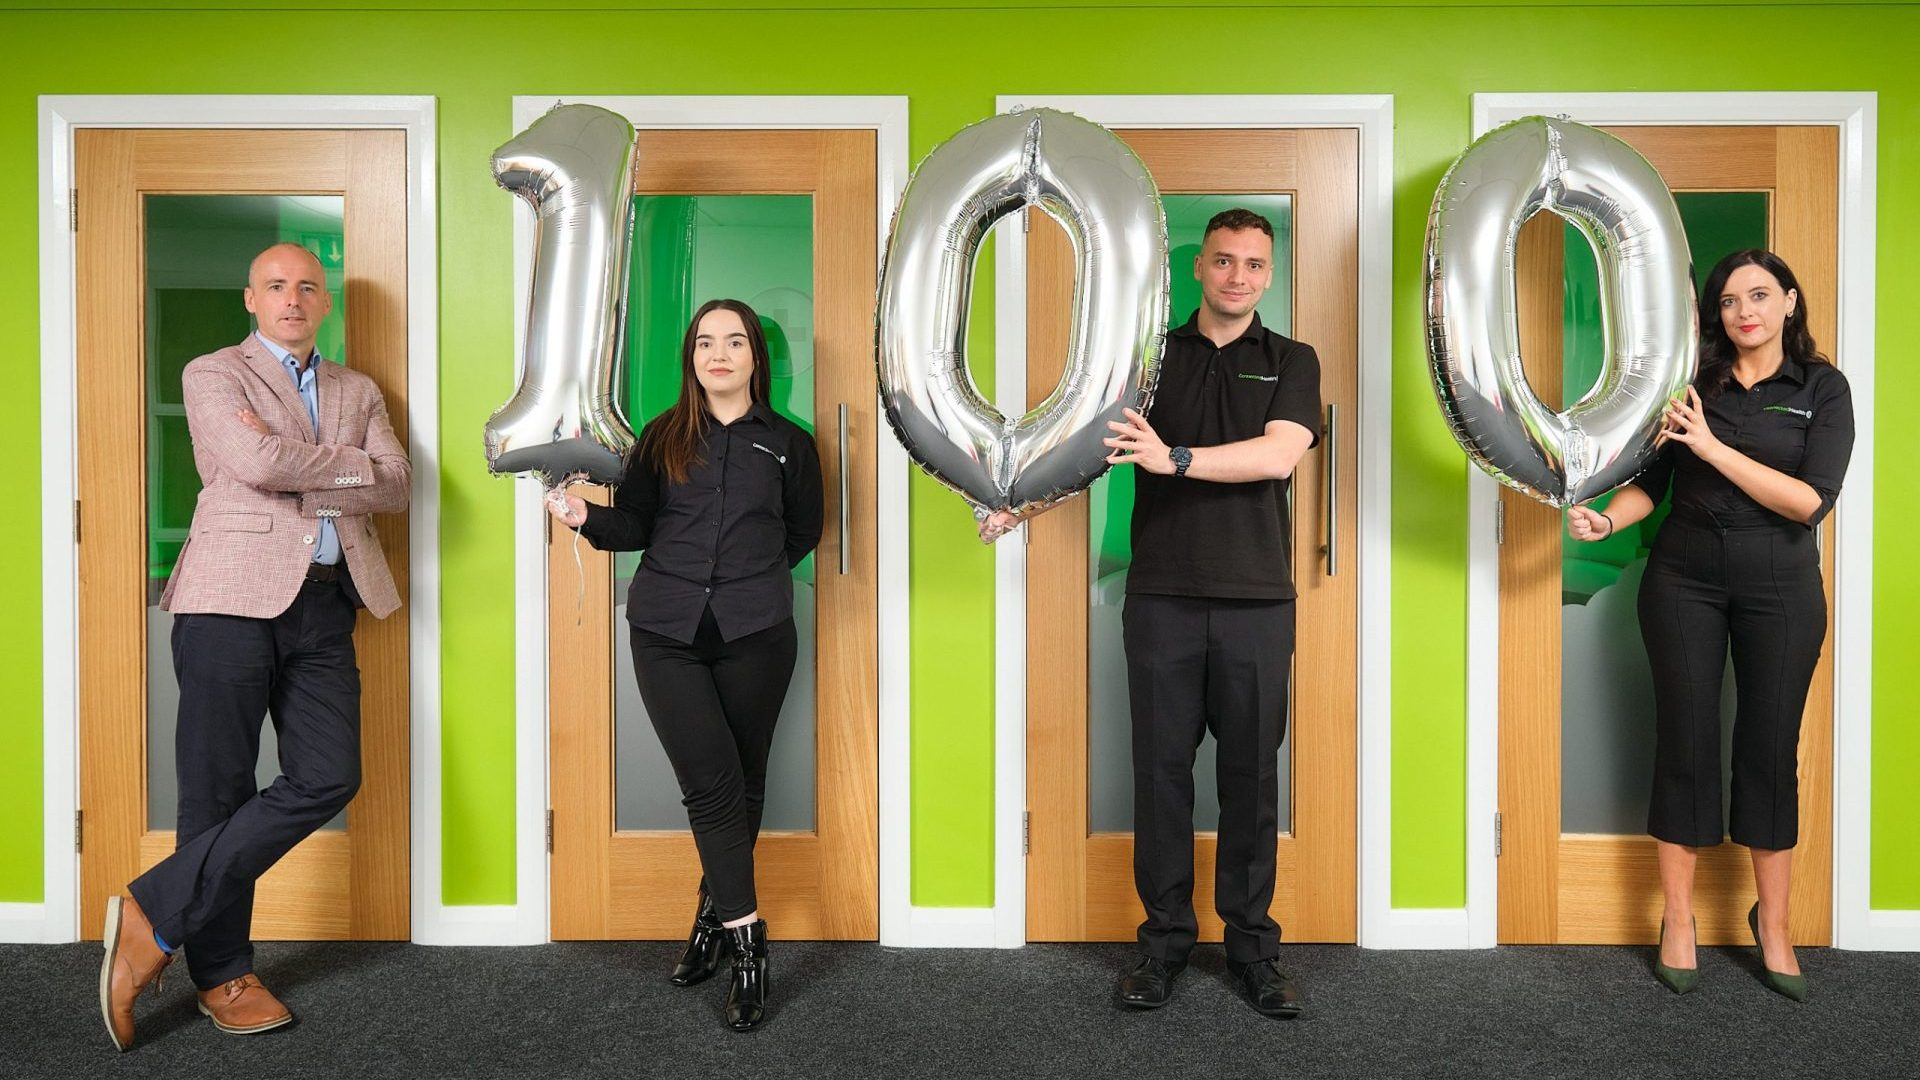 100 Carer Jobs in 7 days - Launch Photo